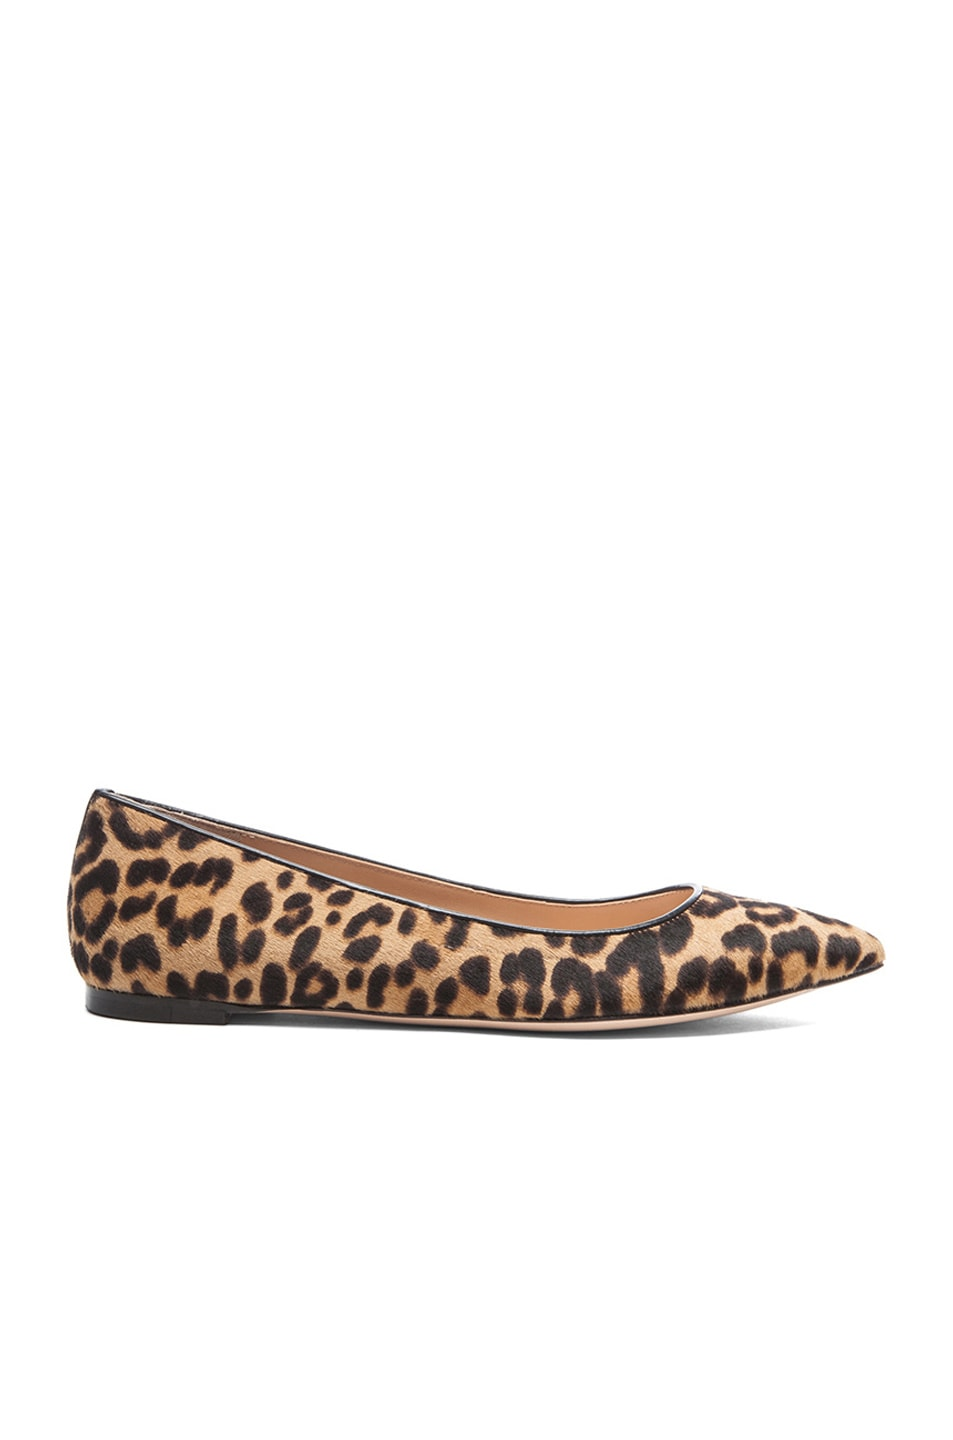 Image 1 of Gianvito Rossi Calf Hair Flats in Leopard & Black